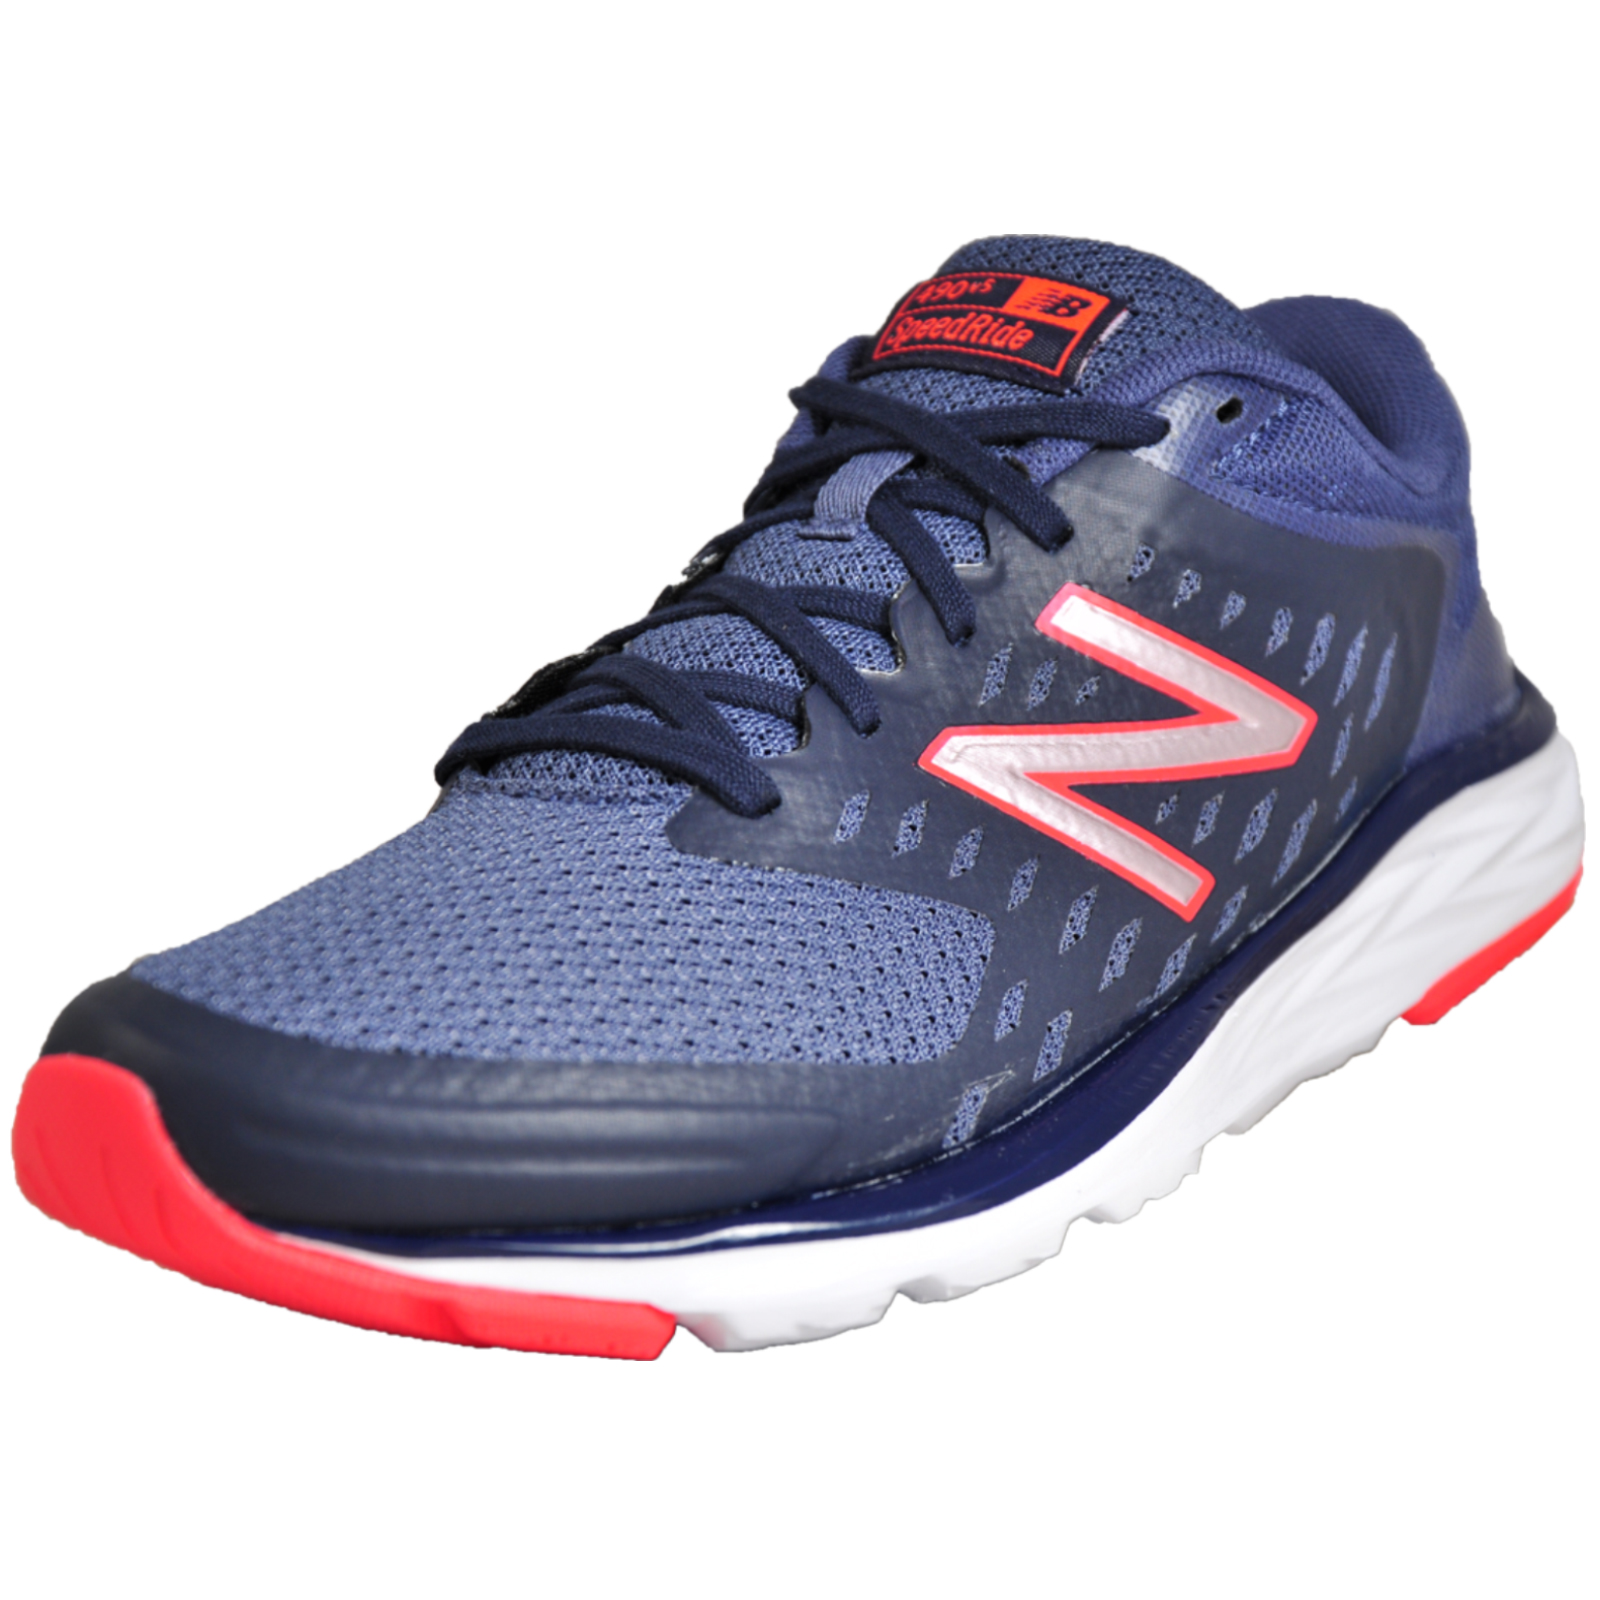 69b39ab6a00da4 Details about New Balance 490 v5 Women s Premium Running Shoes Fitness Gym  Workout Trainers